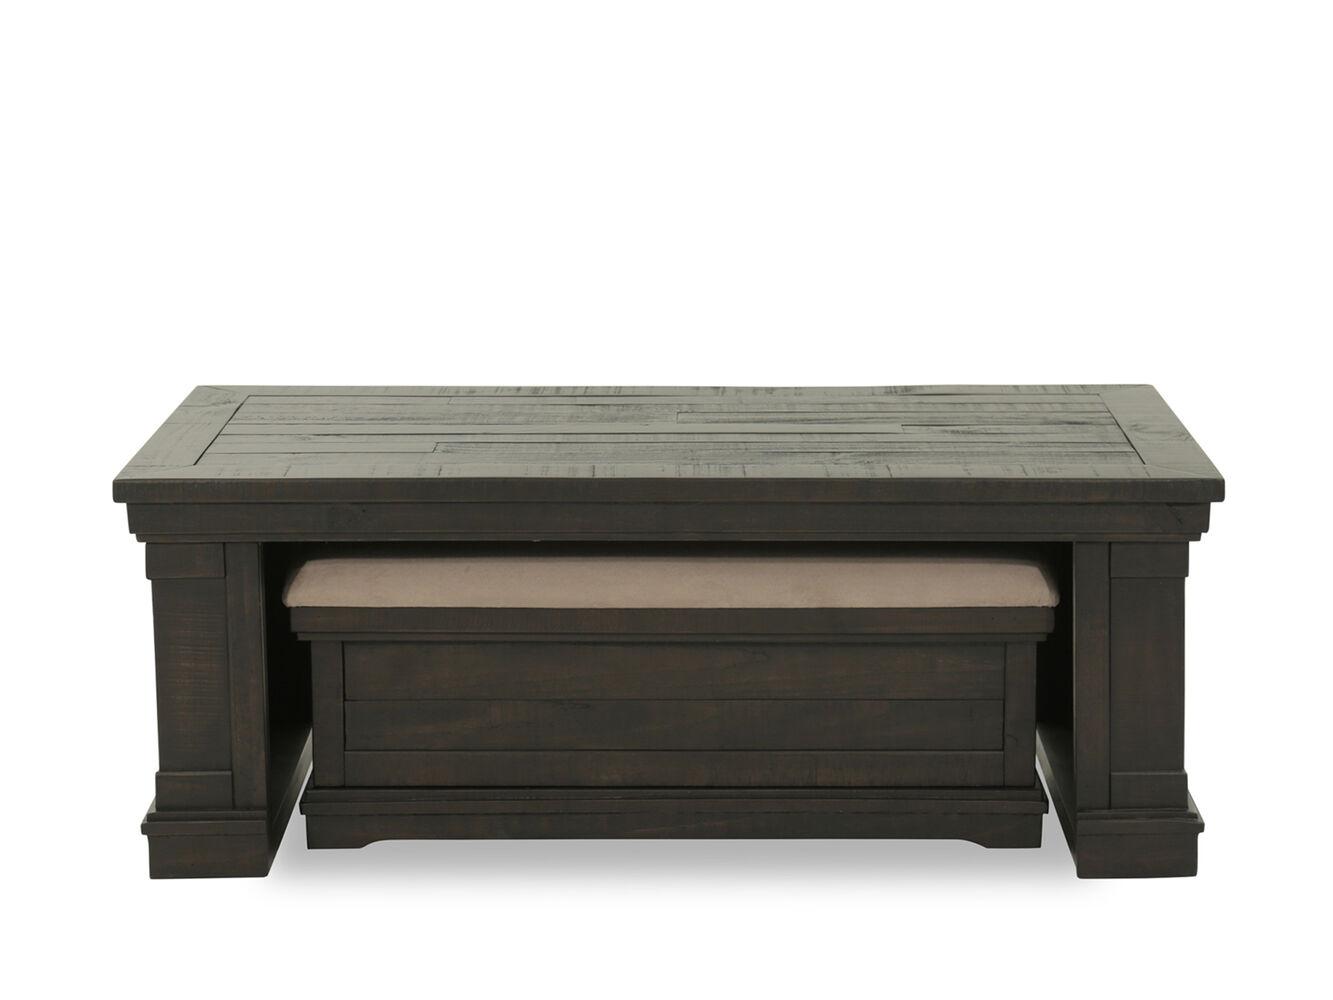 Plank top solid wood cocktail table set in brown mathis for Wood plank top coffee table